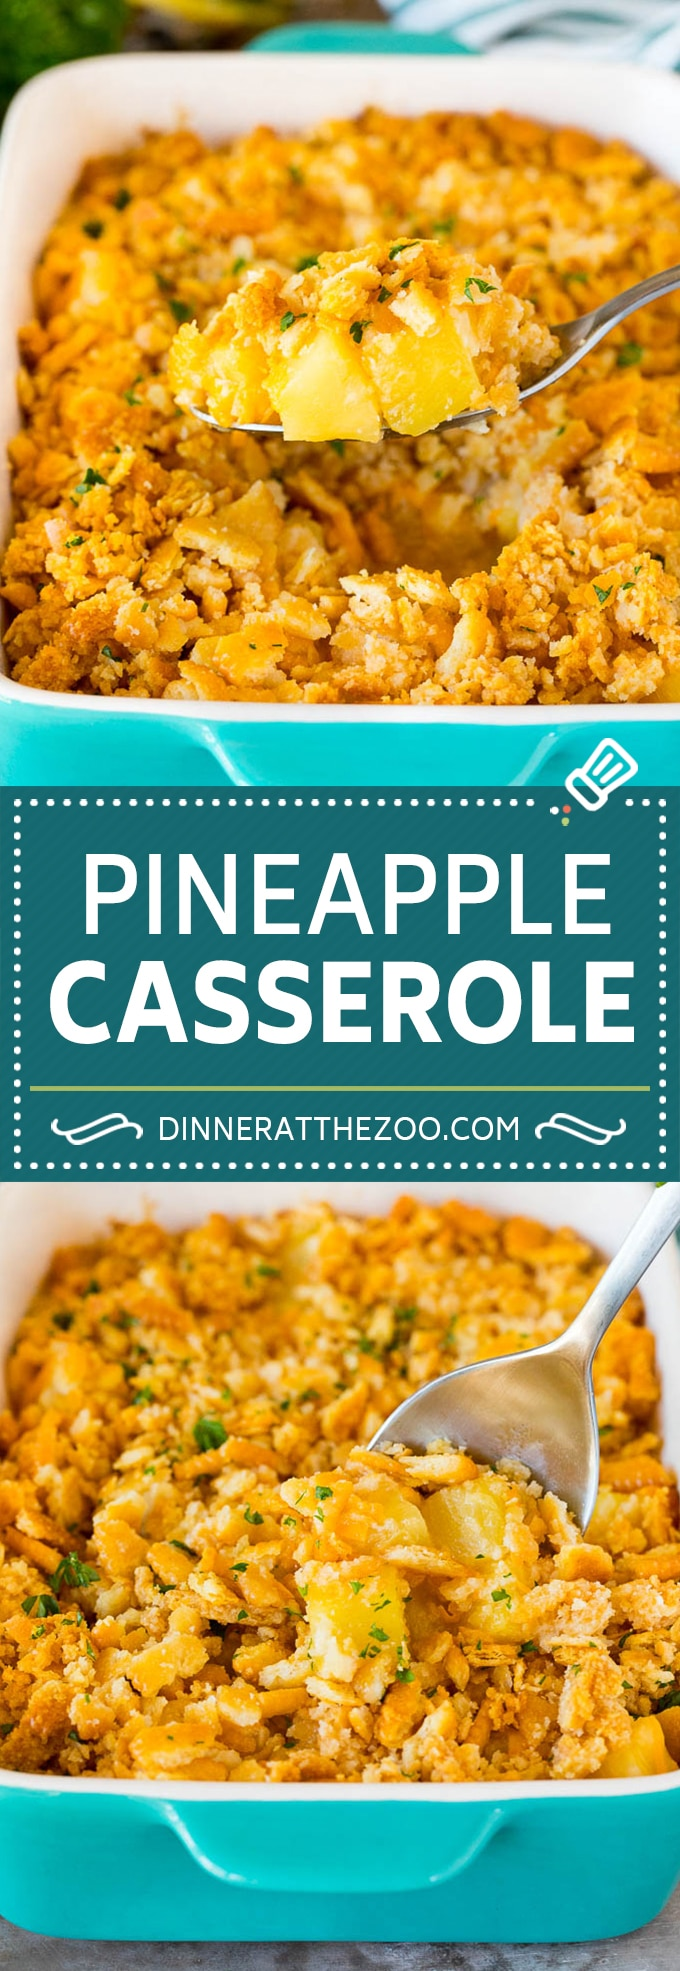 This Southern pineapple casserole is pineapple, cheese and buttery crackers, all baked together to create a sweet and savory side dish.